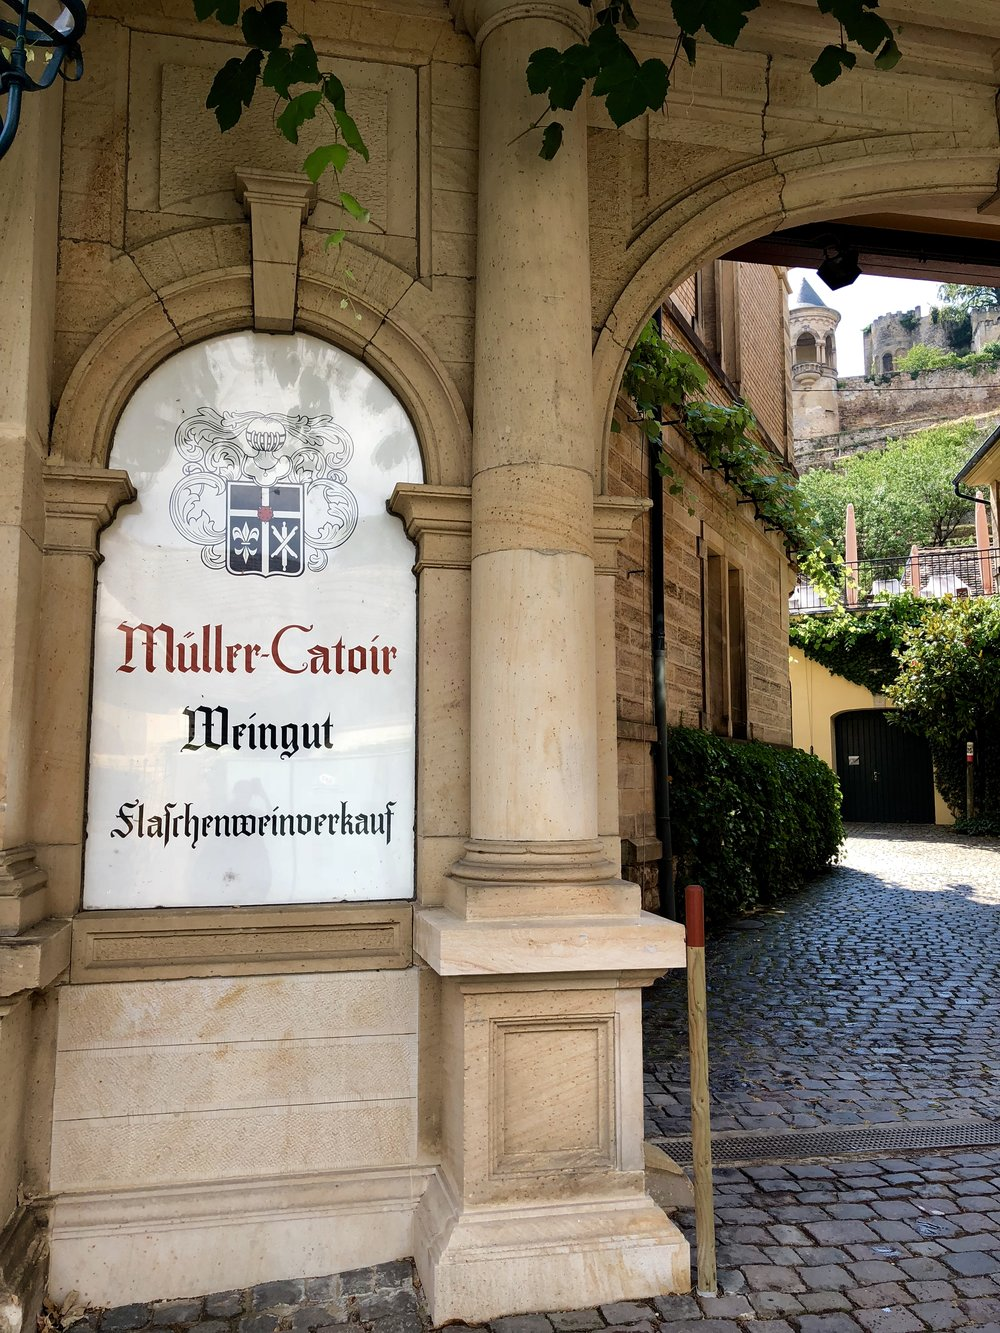 Pfalz First - Why you should think and drink the wines of this unmissable German region. August 2018